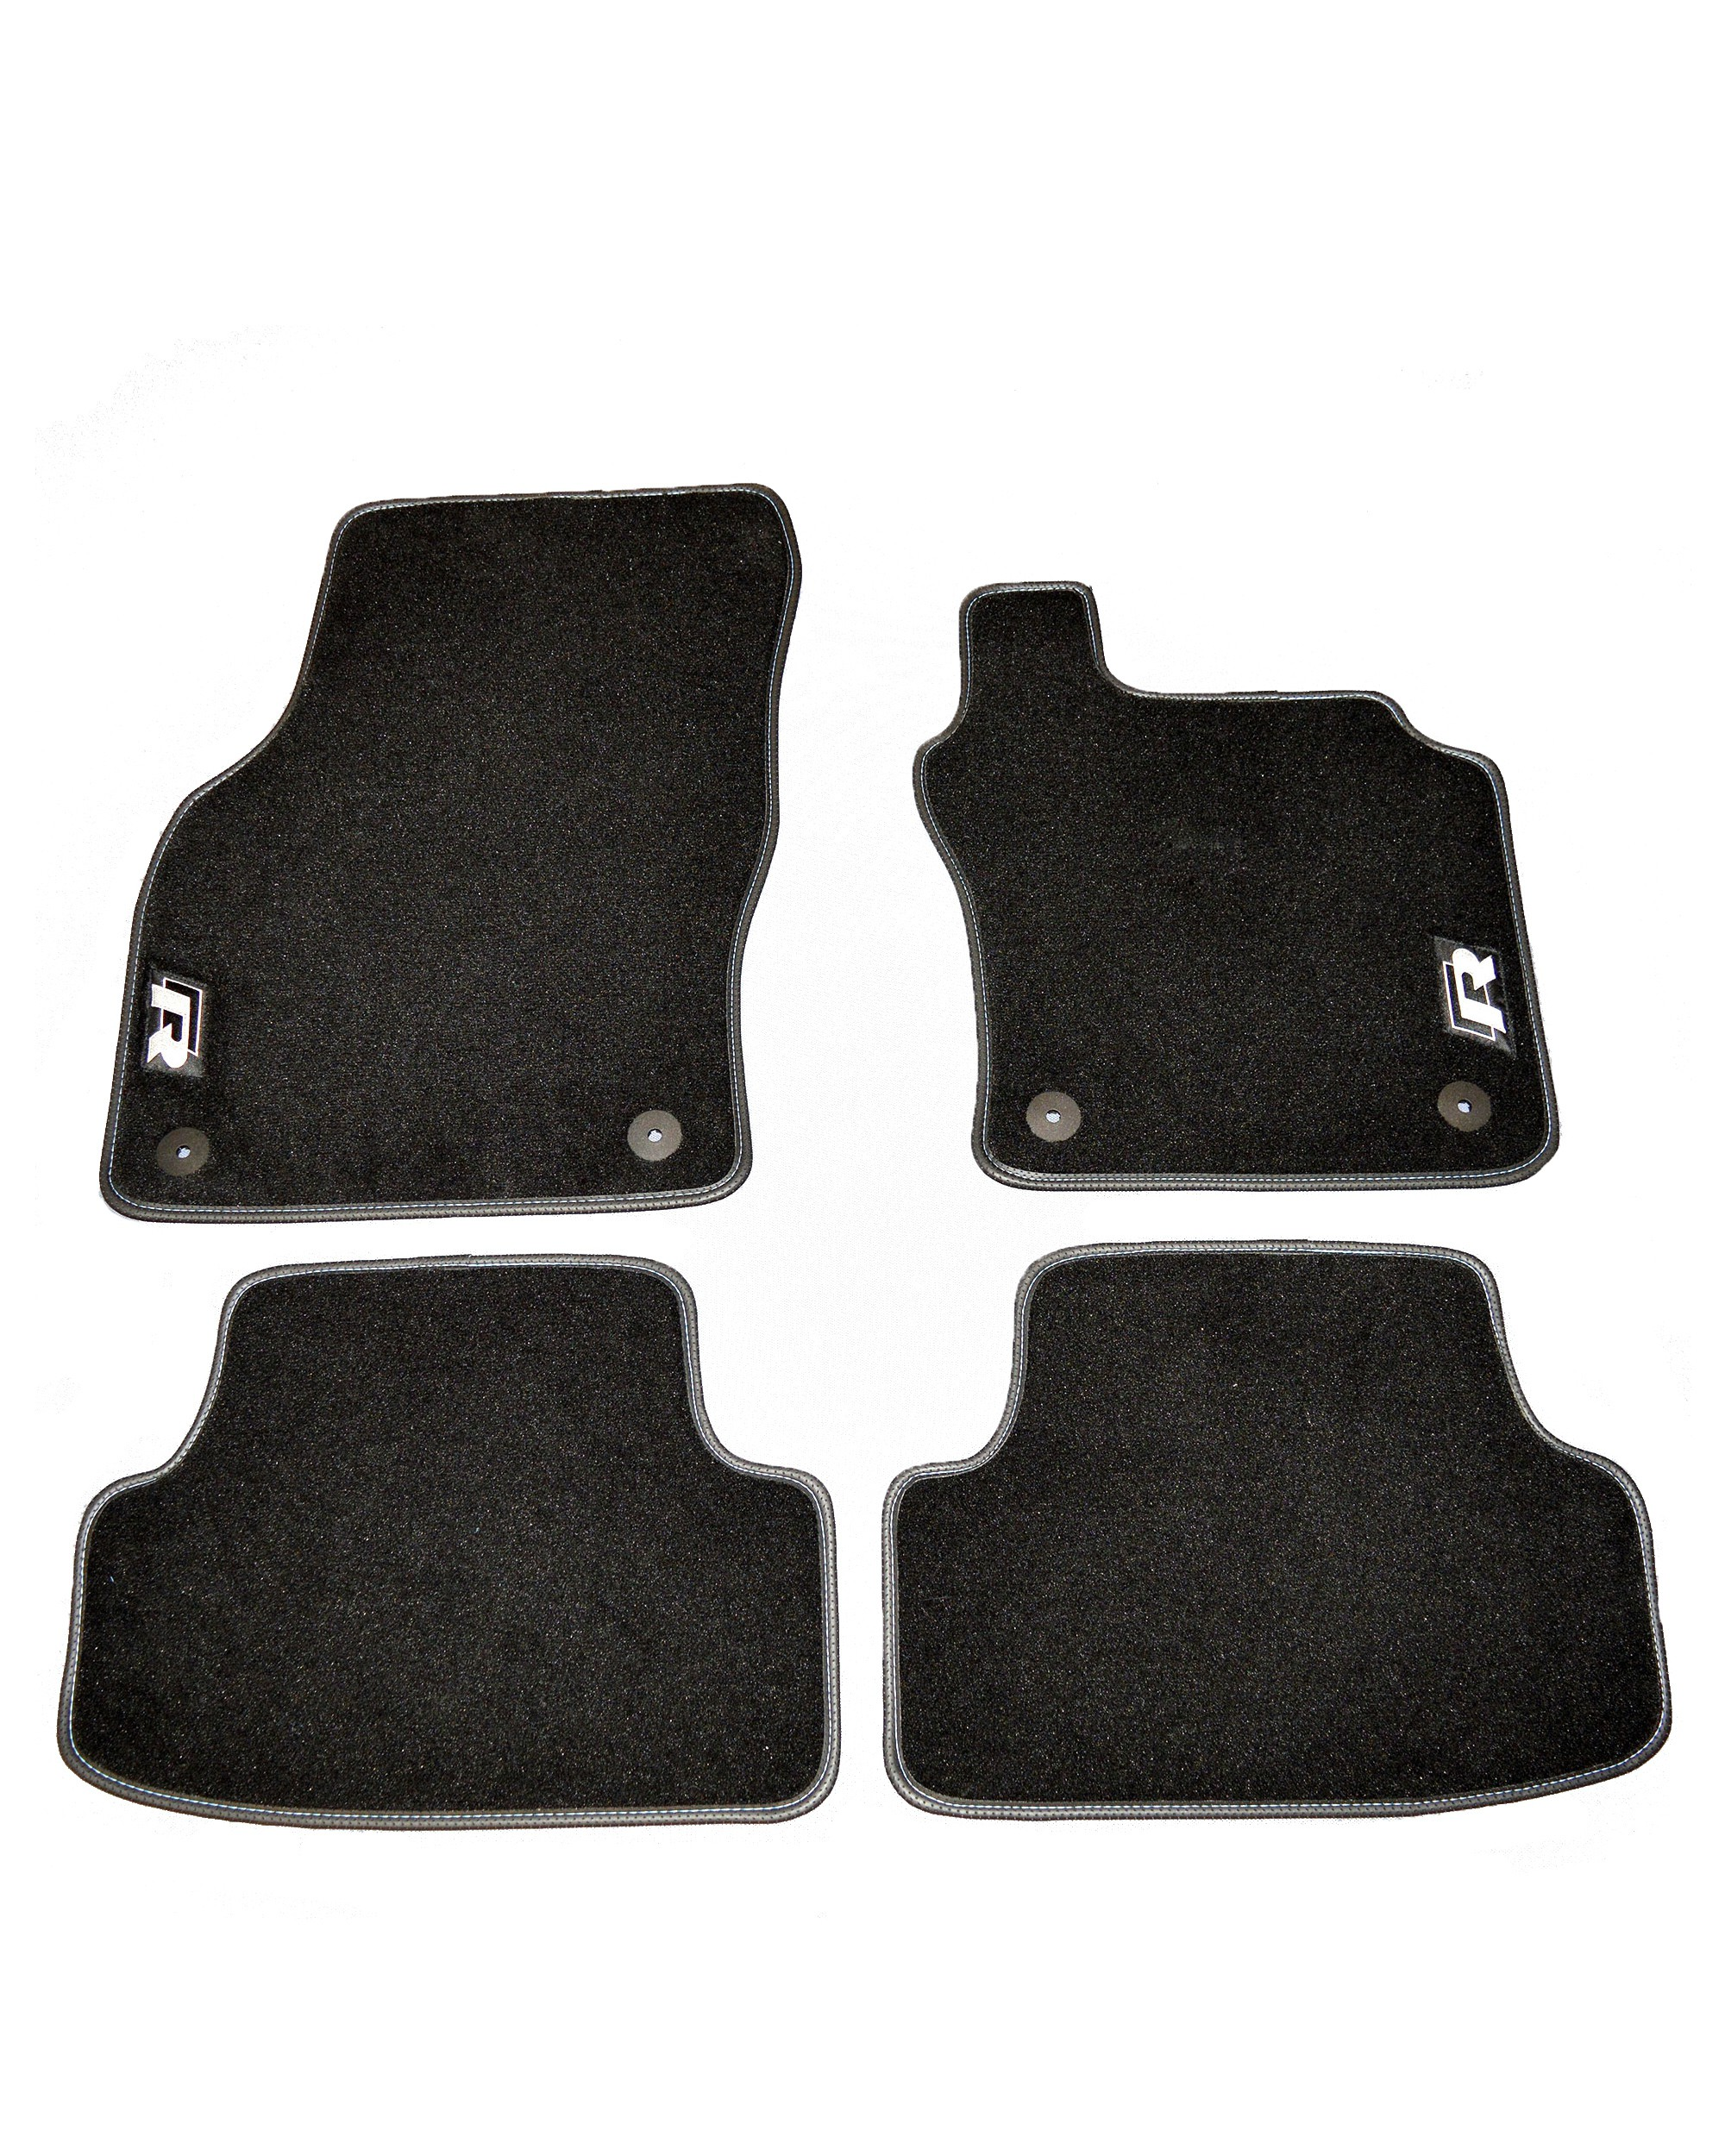 VW Golf R MK7 Tailored Luxury Car Floor Mats